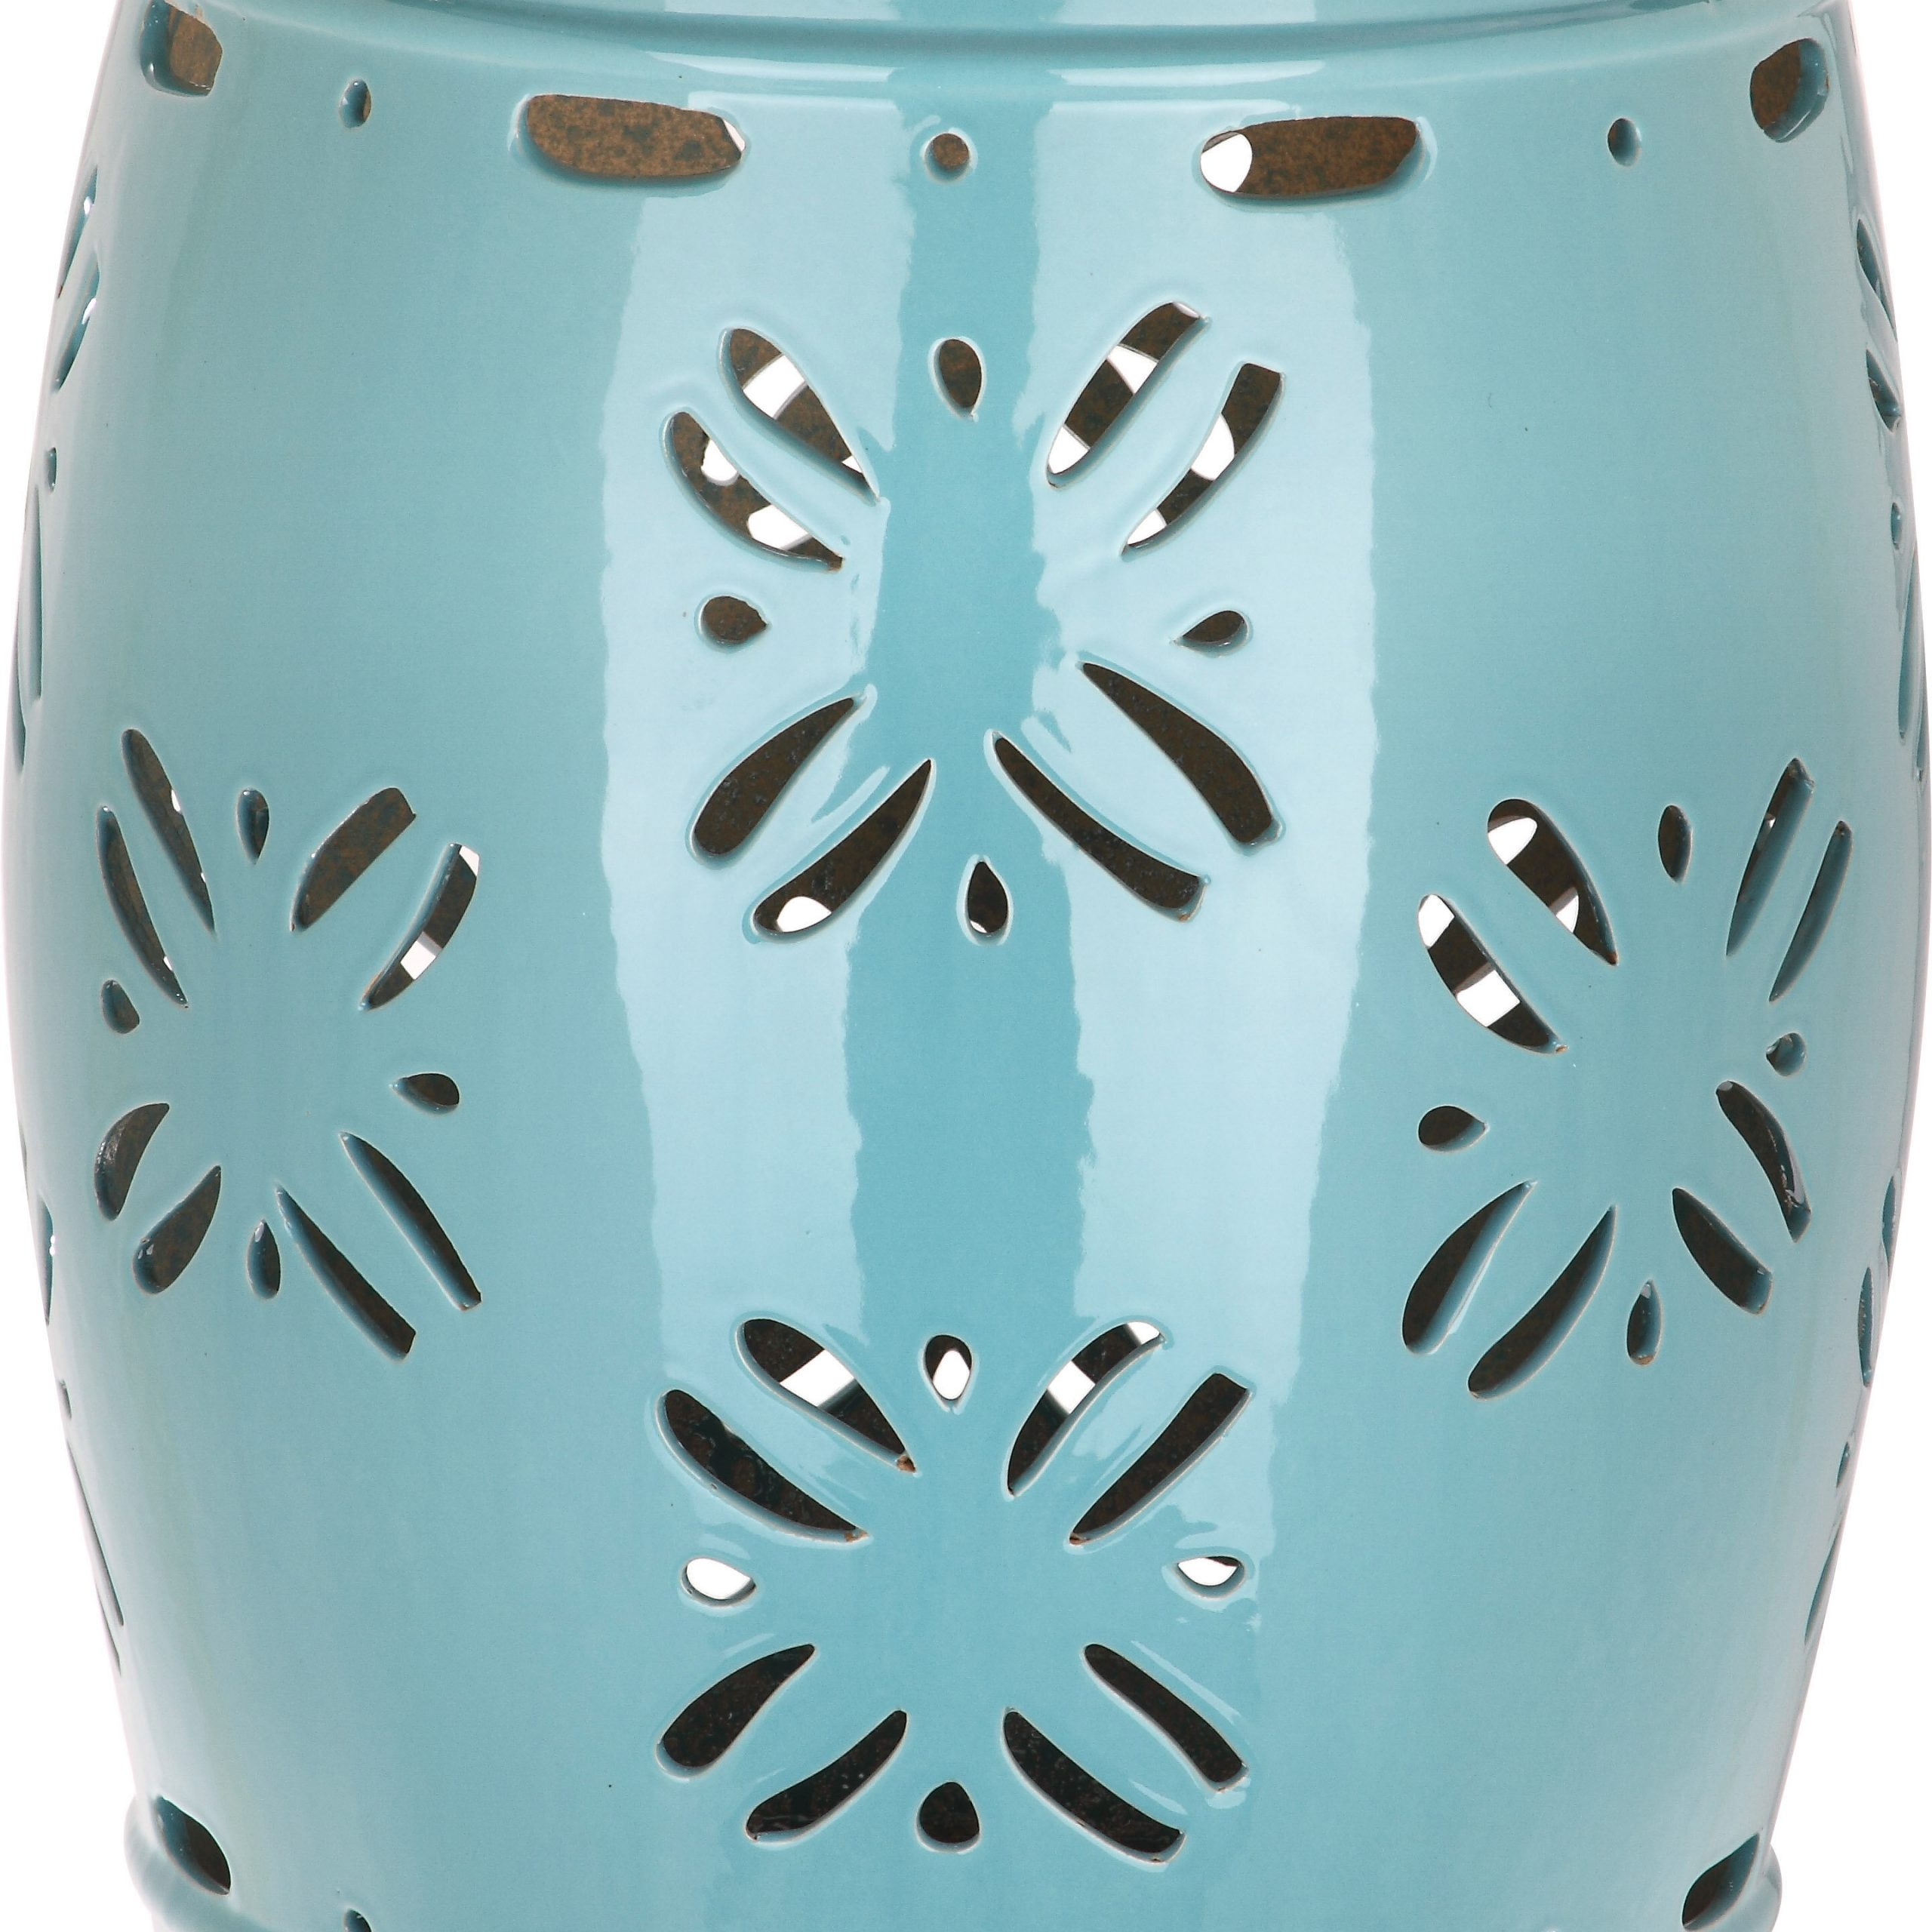 Ceramic Garden Accent Stools You'Ll Love In 2020 | Wayfair Intended For Williar Cherry Blossom Ceramic Garden Stools (View 6 of 25)